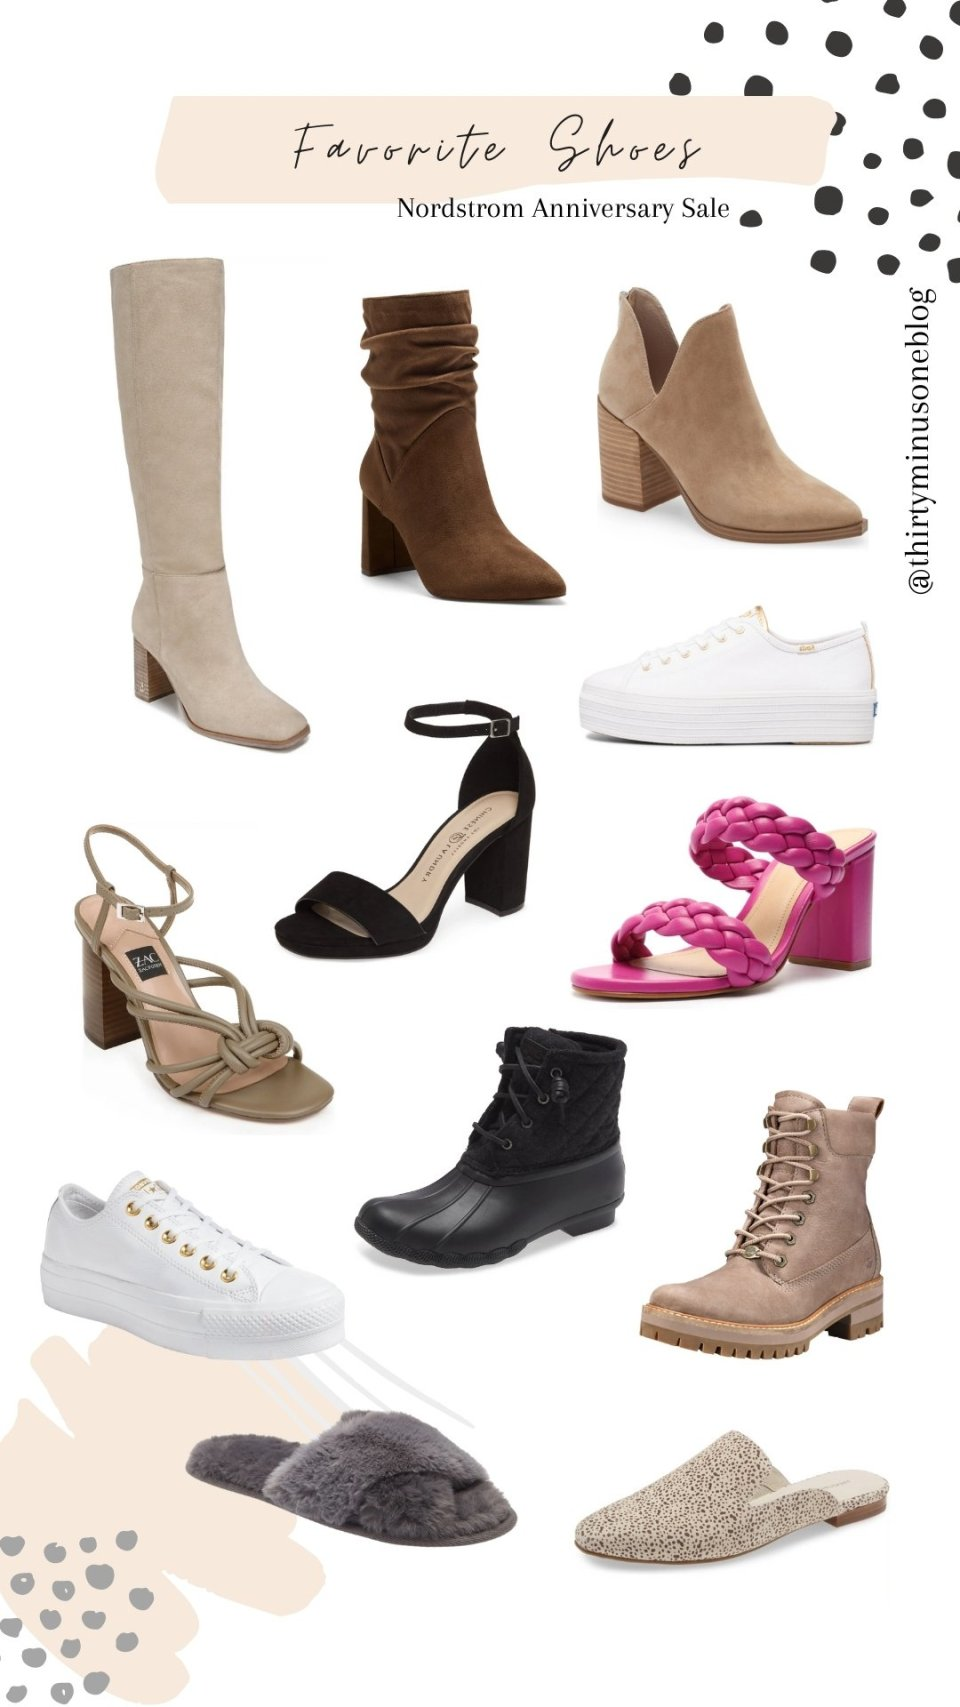 Nordstrom Anniversary Sale Picks for Every Budget